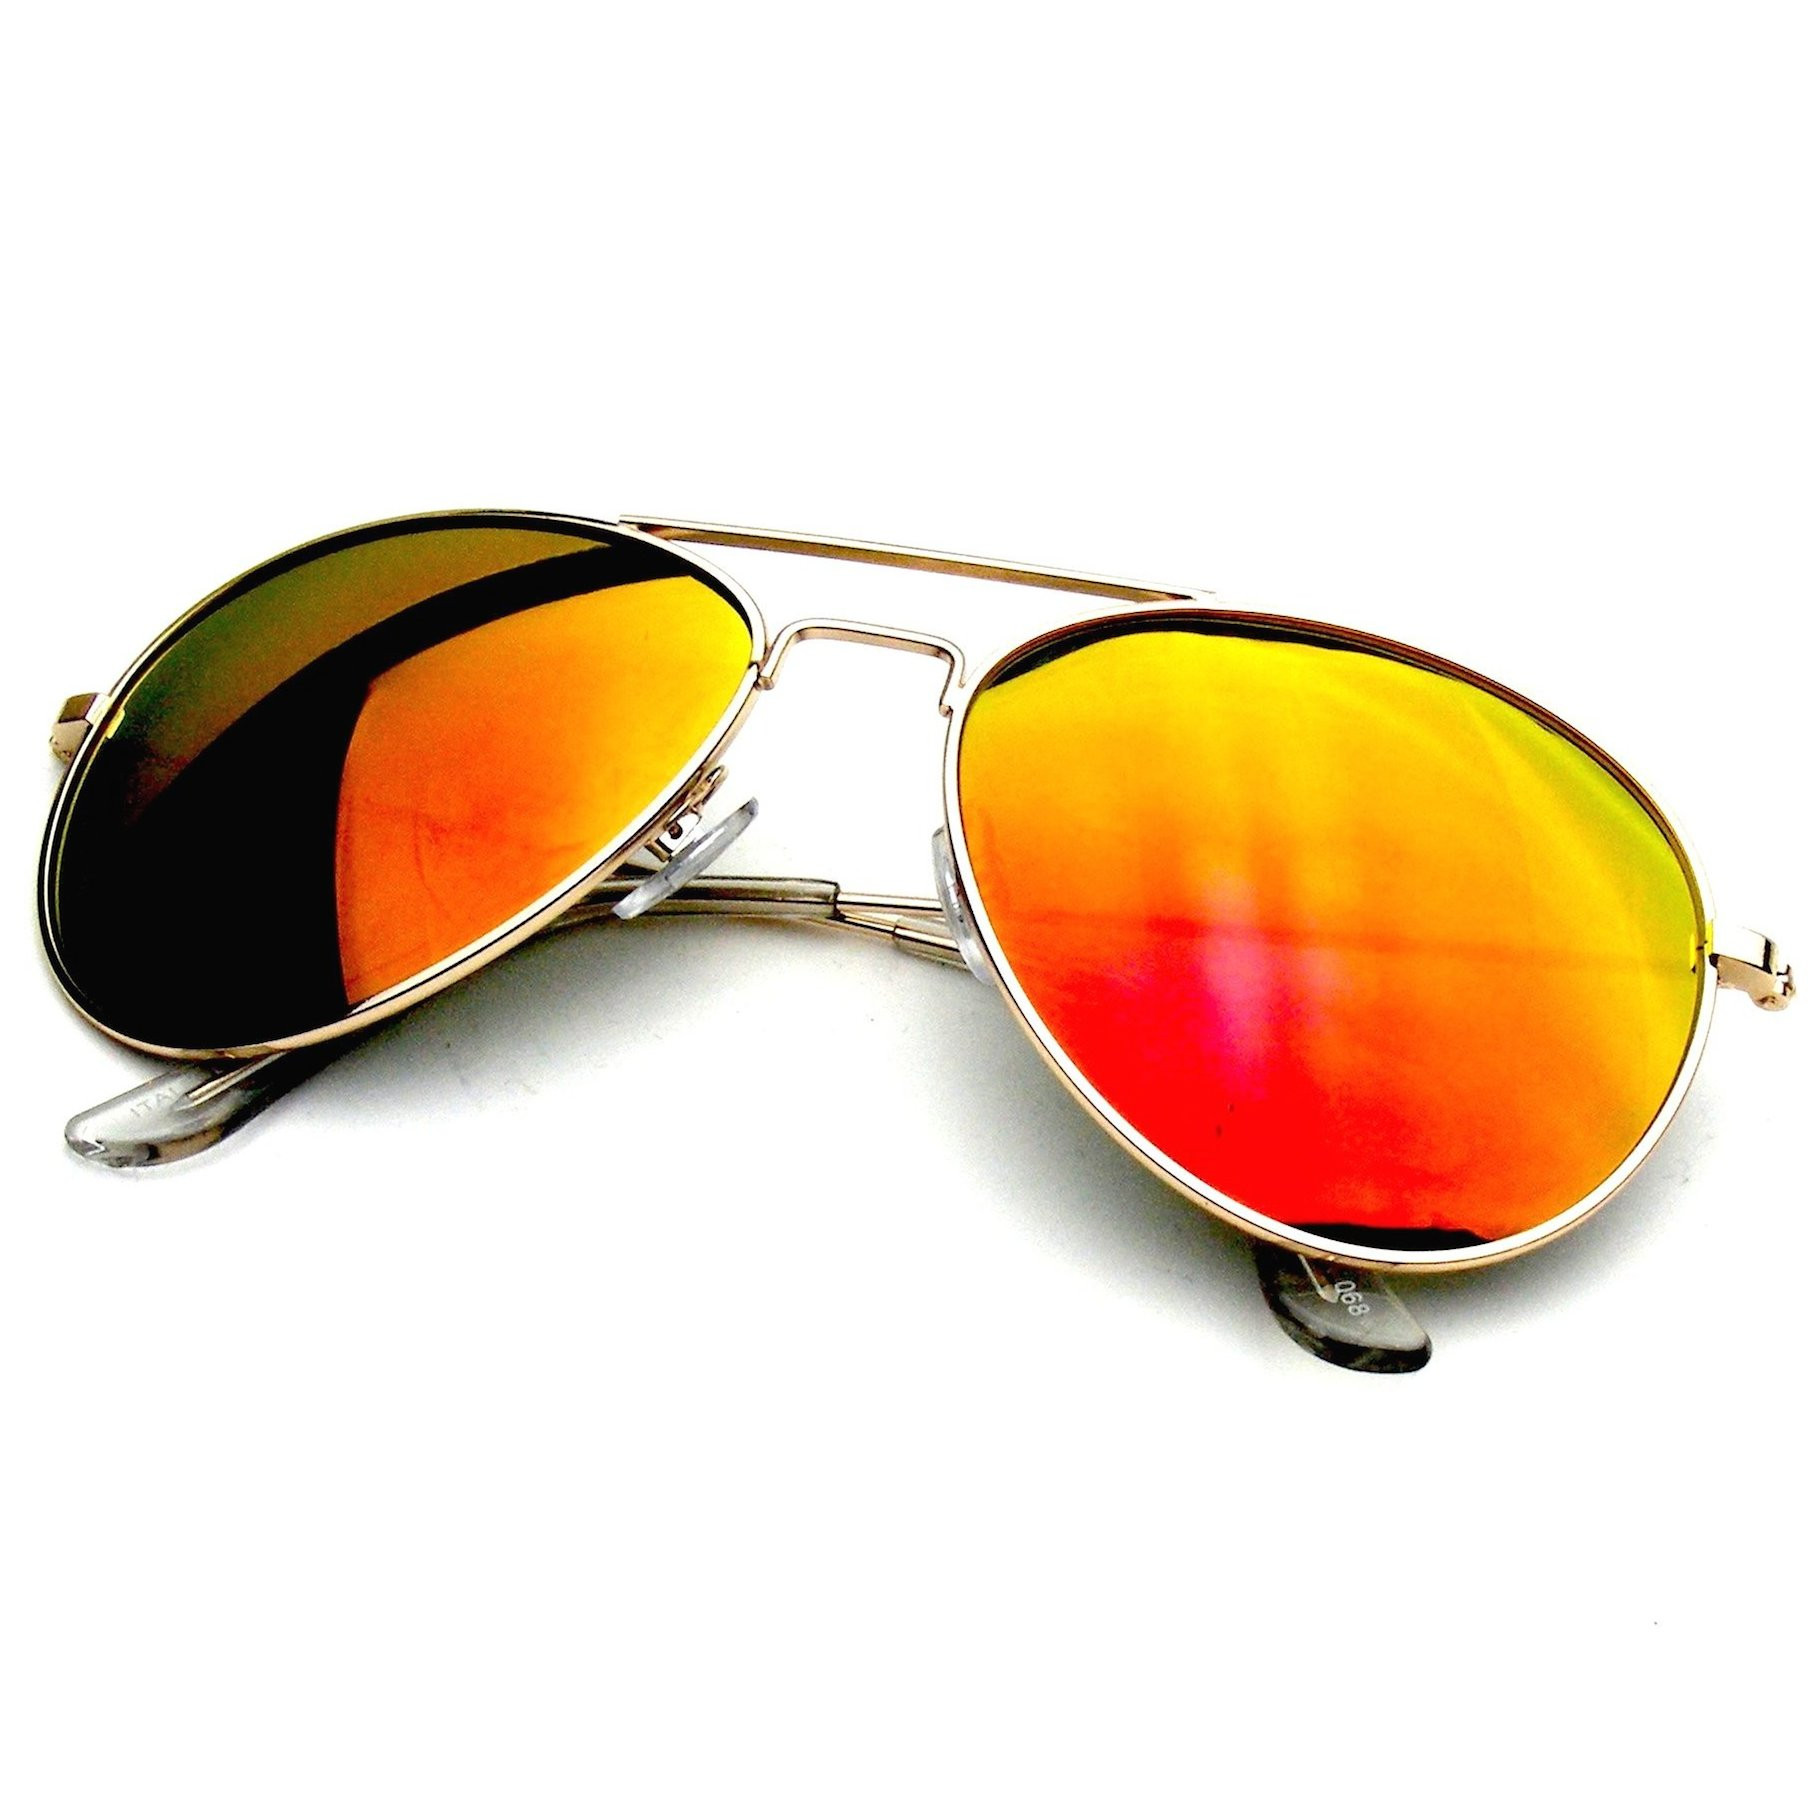 Revo mirrored lens sunglasses collection. Revo reflective color lenses allow dynamic color changing depending on angle and light.